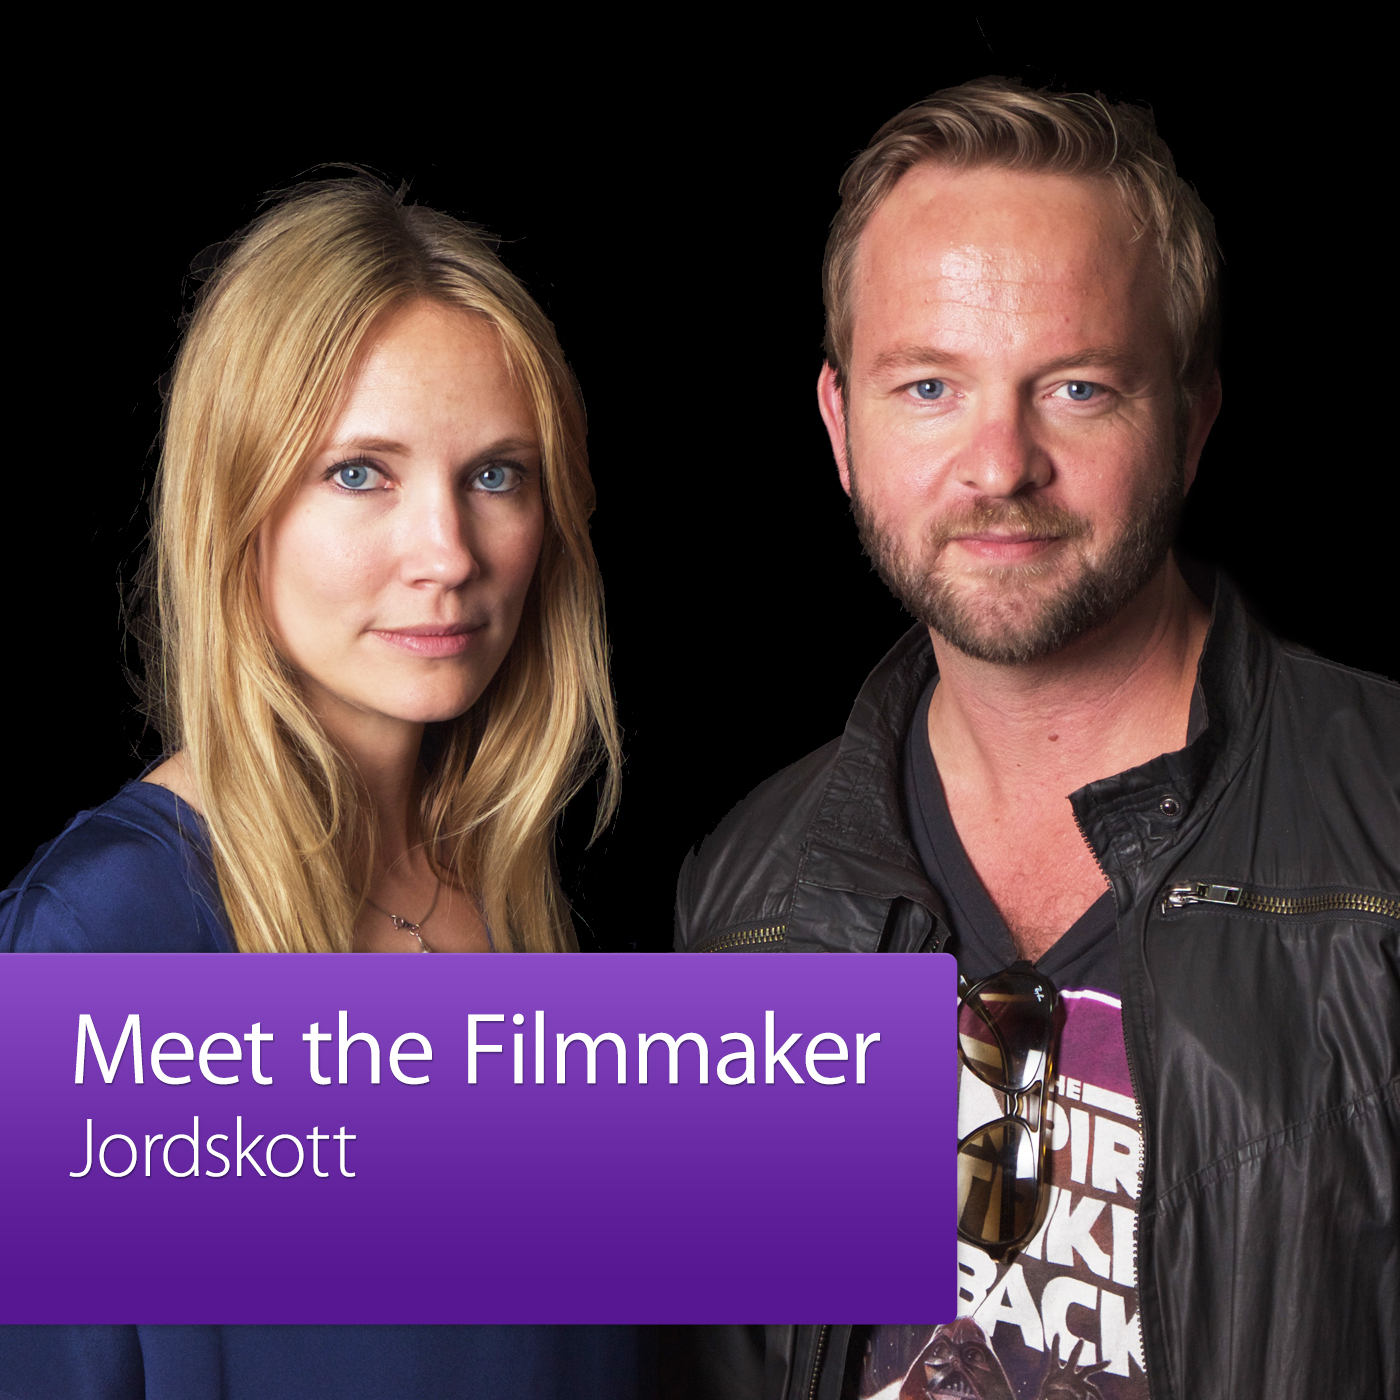 Jordskott: Meet the Filmmaker